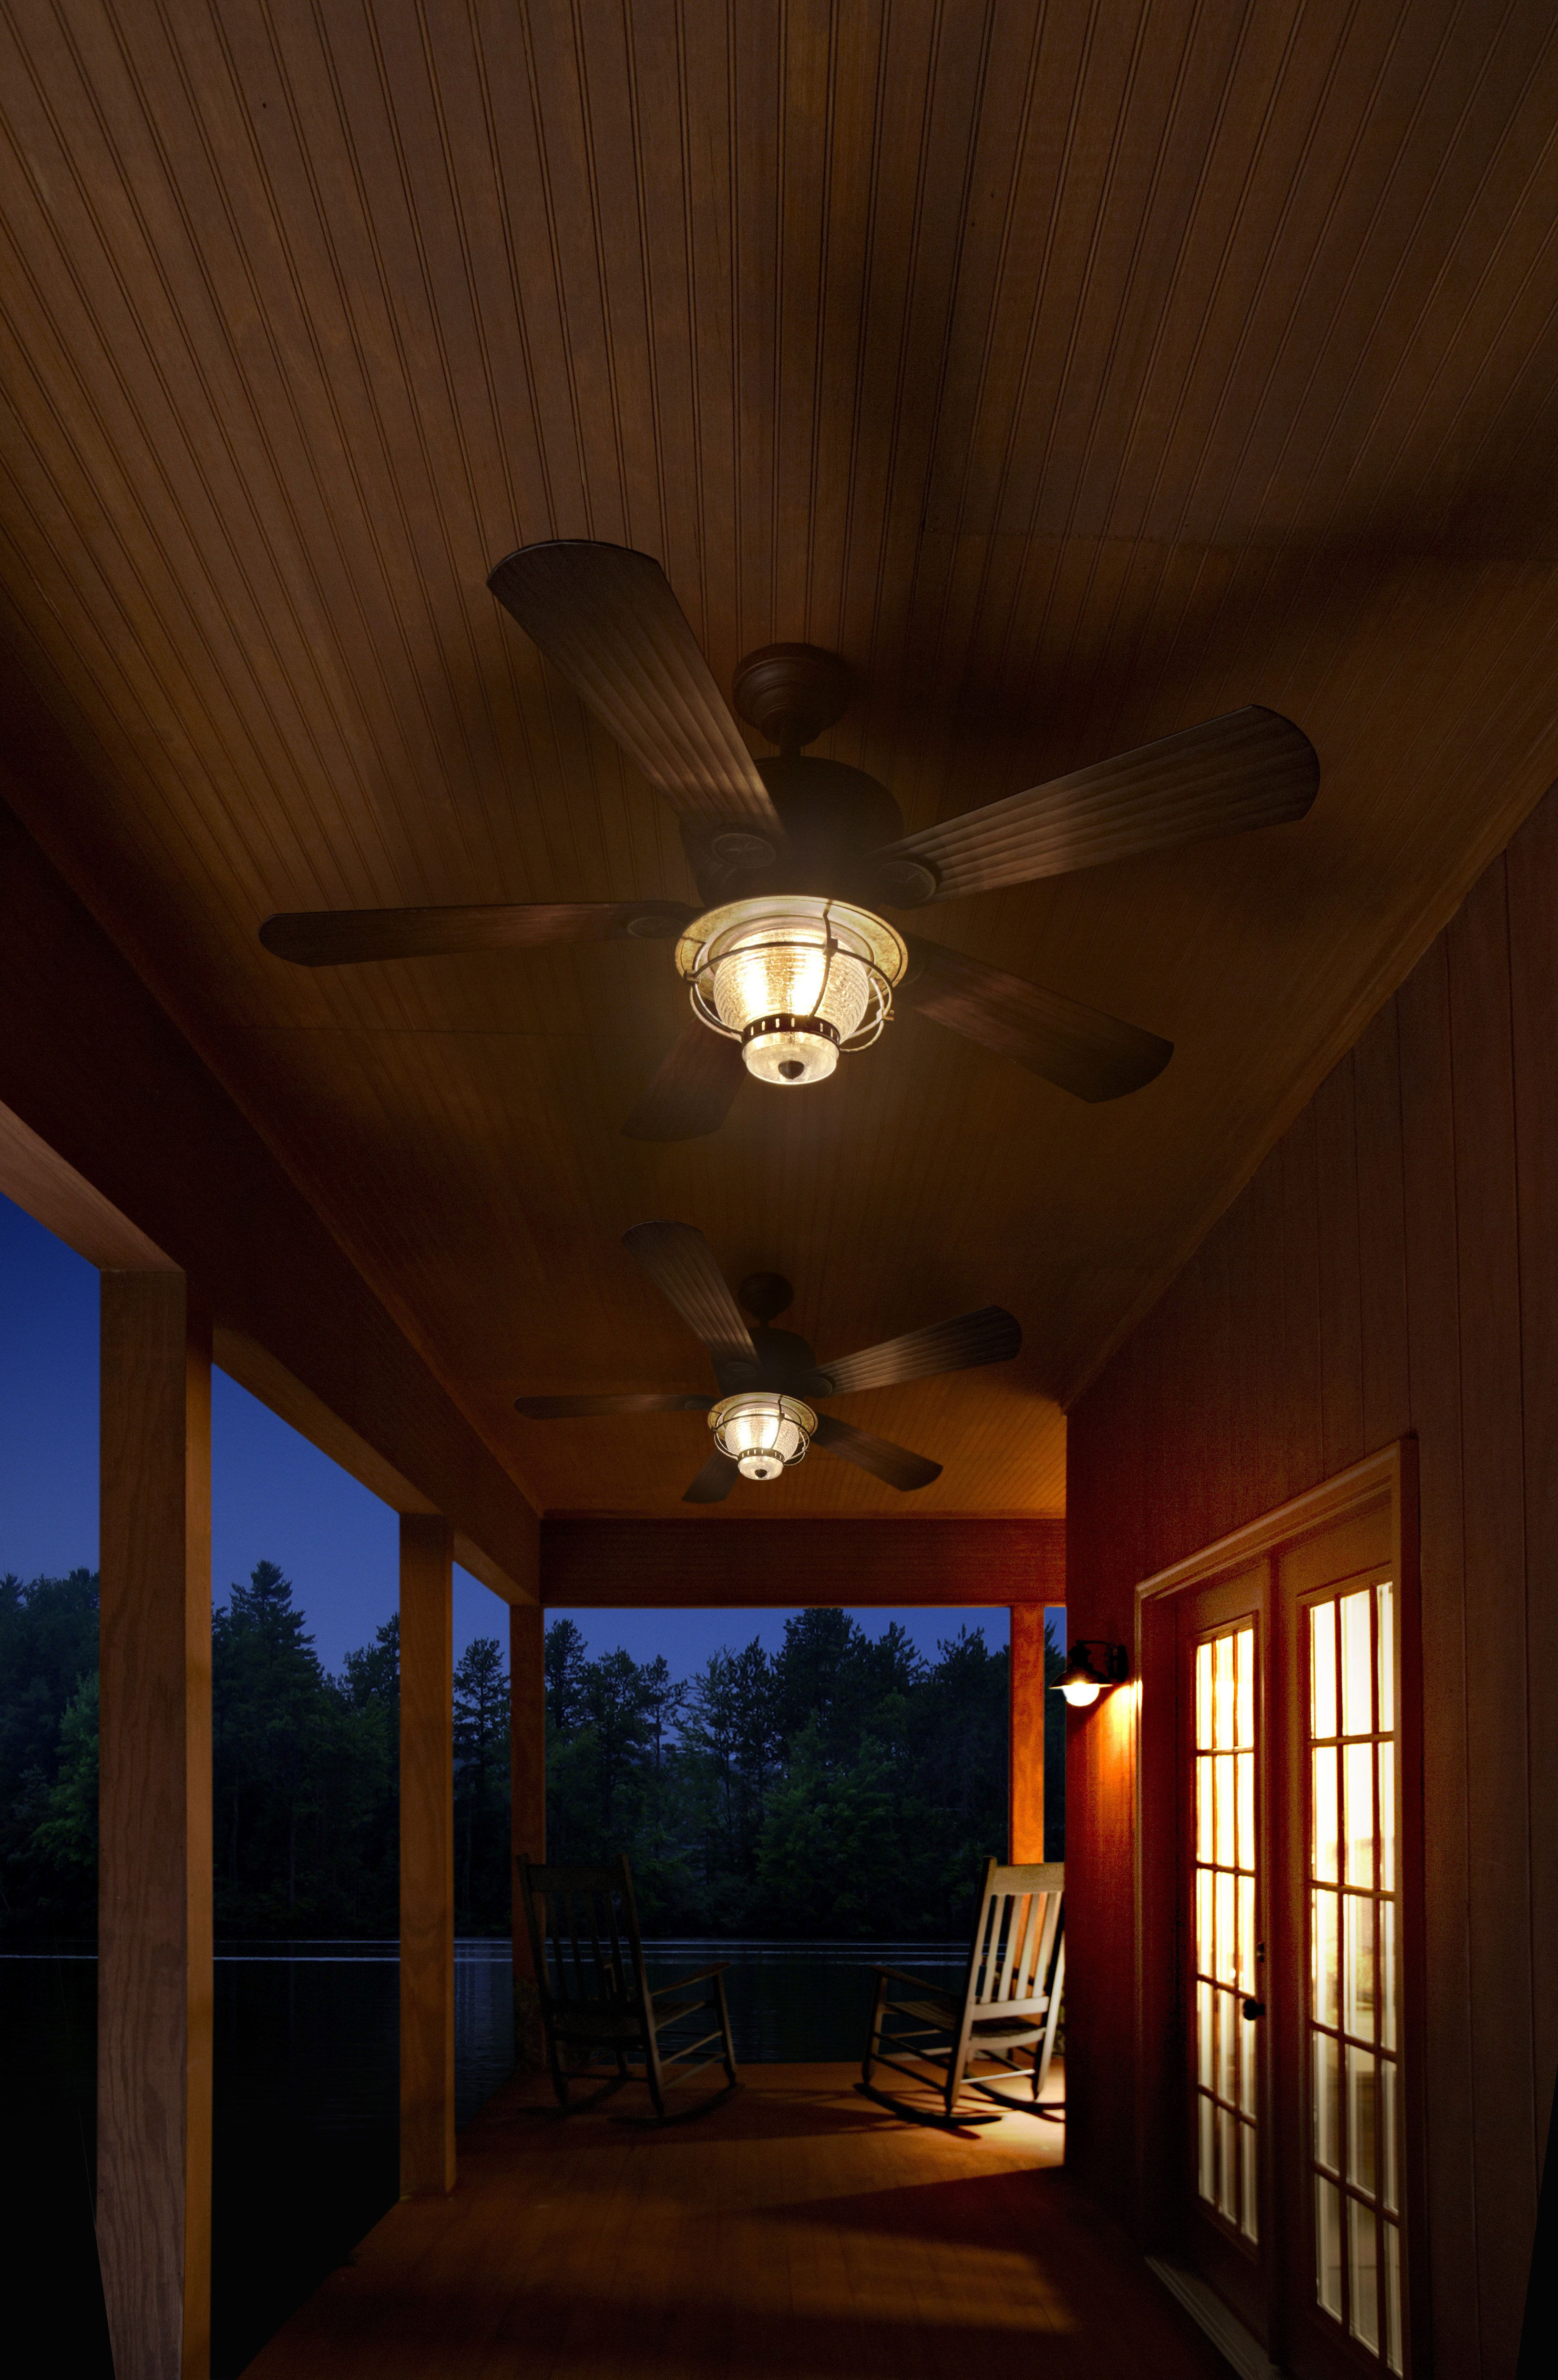 Be Prepared For The Summer Heat With Harbor Breeze Outdoor Ceiling pertaining to dimensions 3268 X 4992